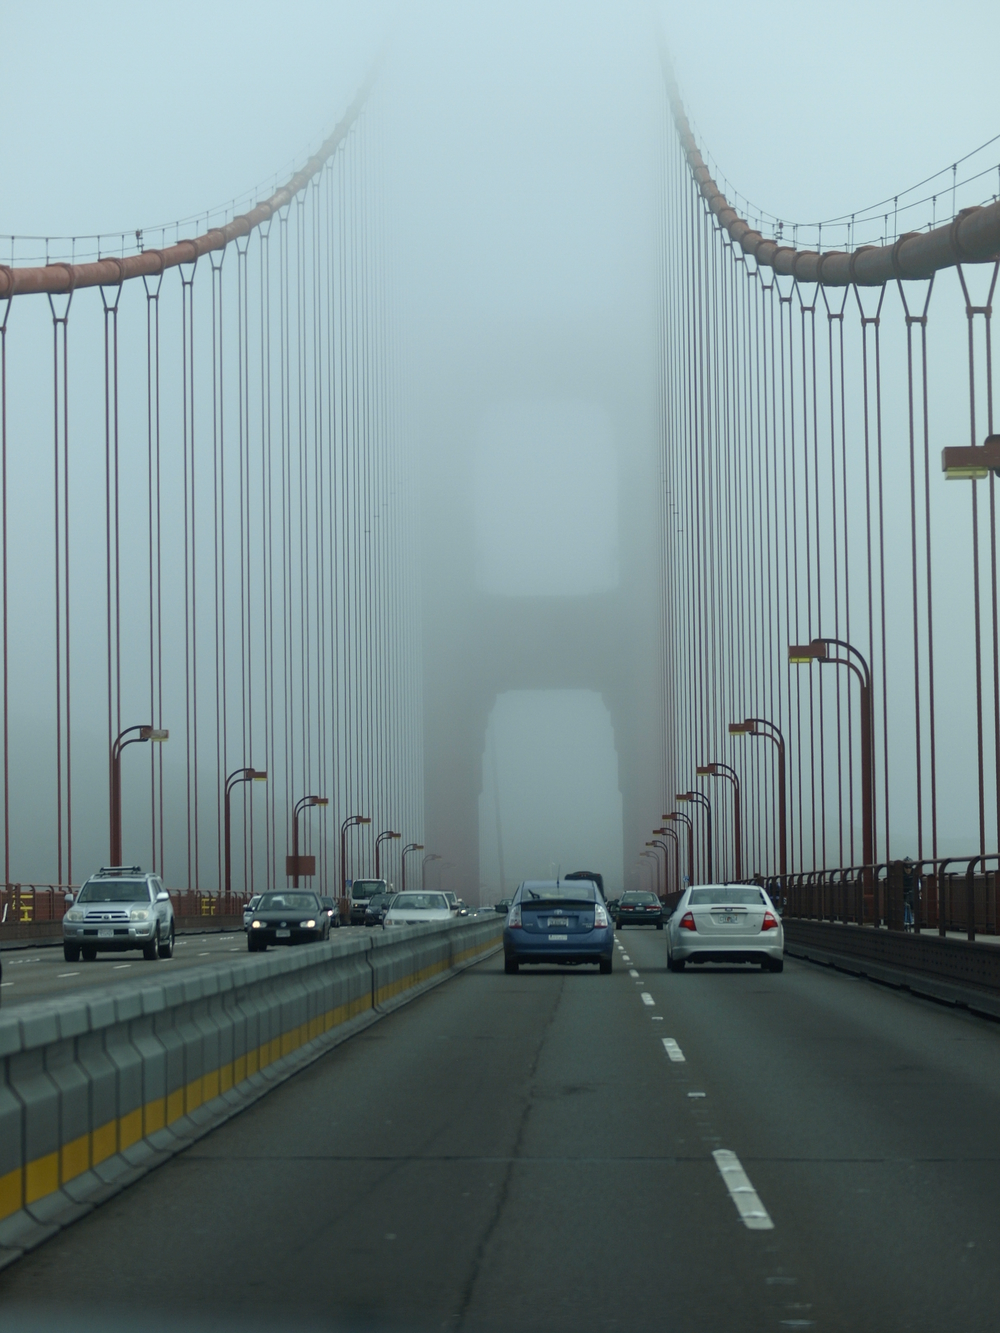 fog-on-bridge.jpg